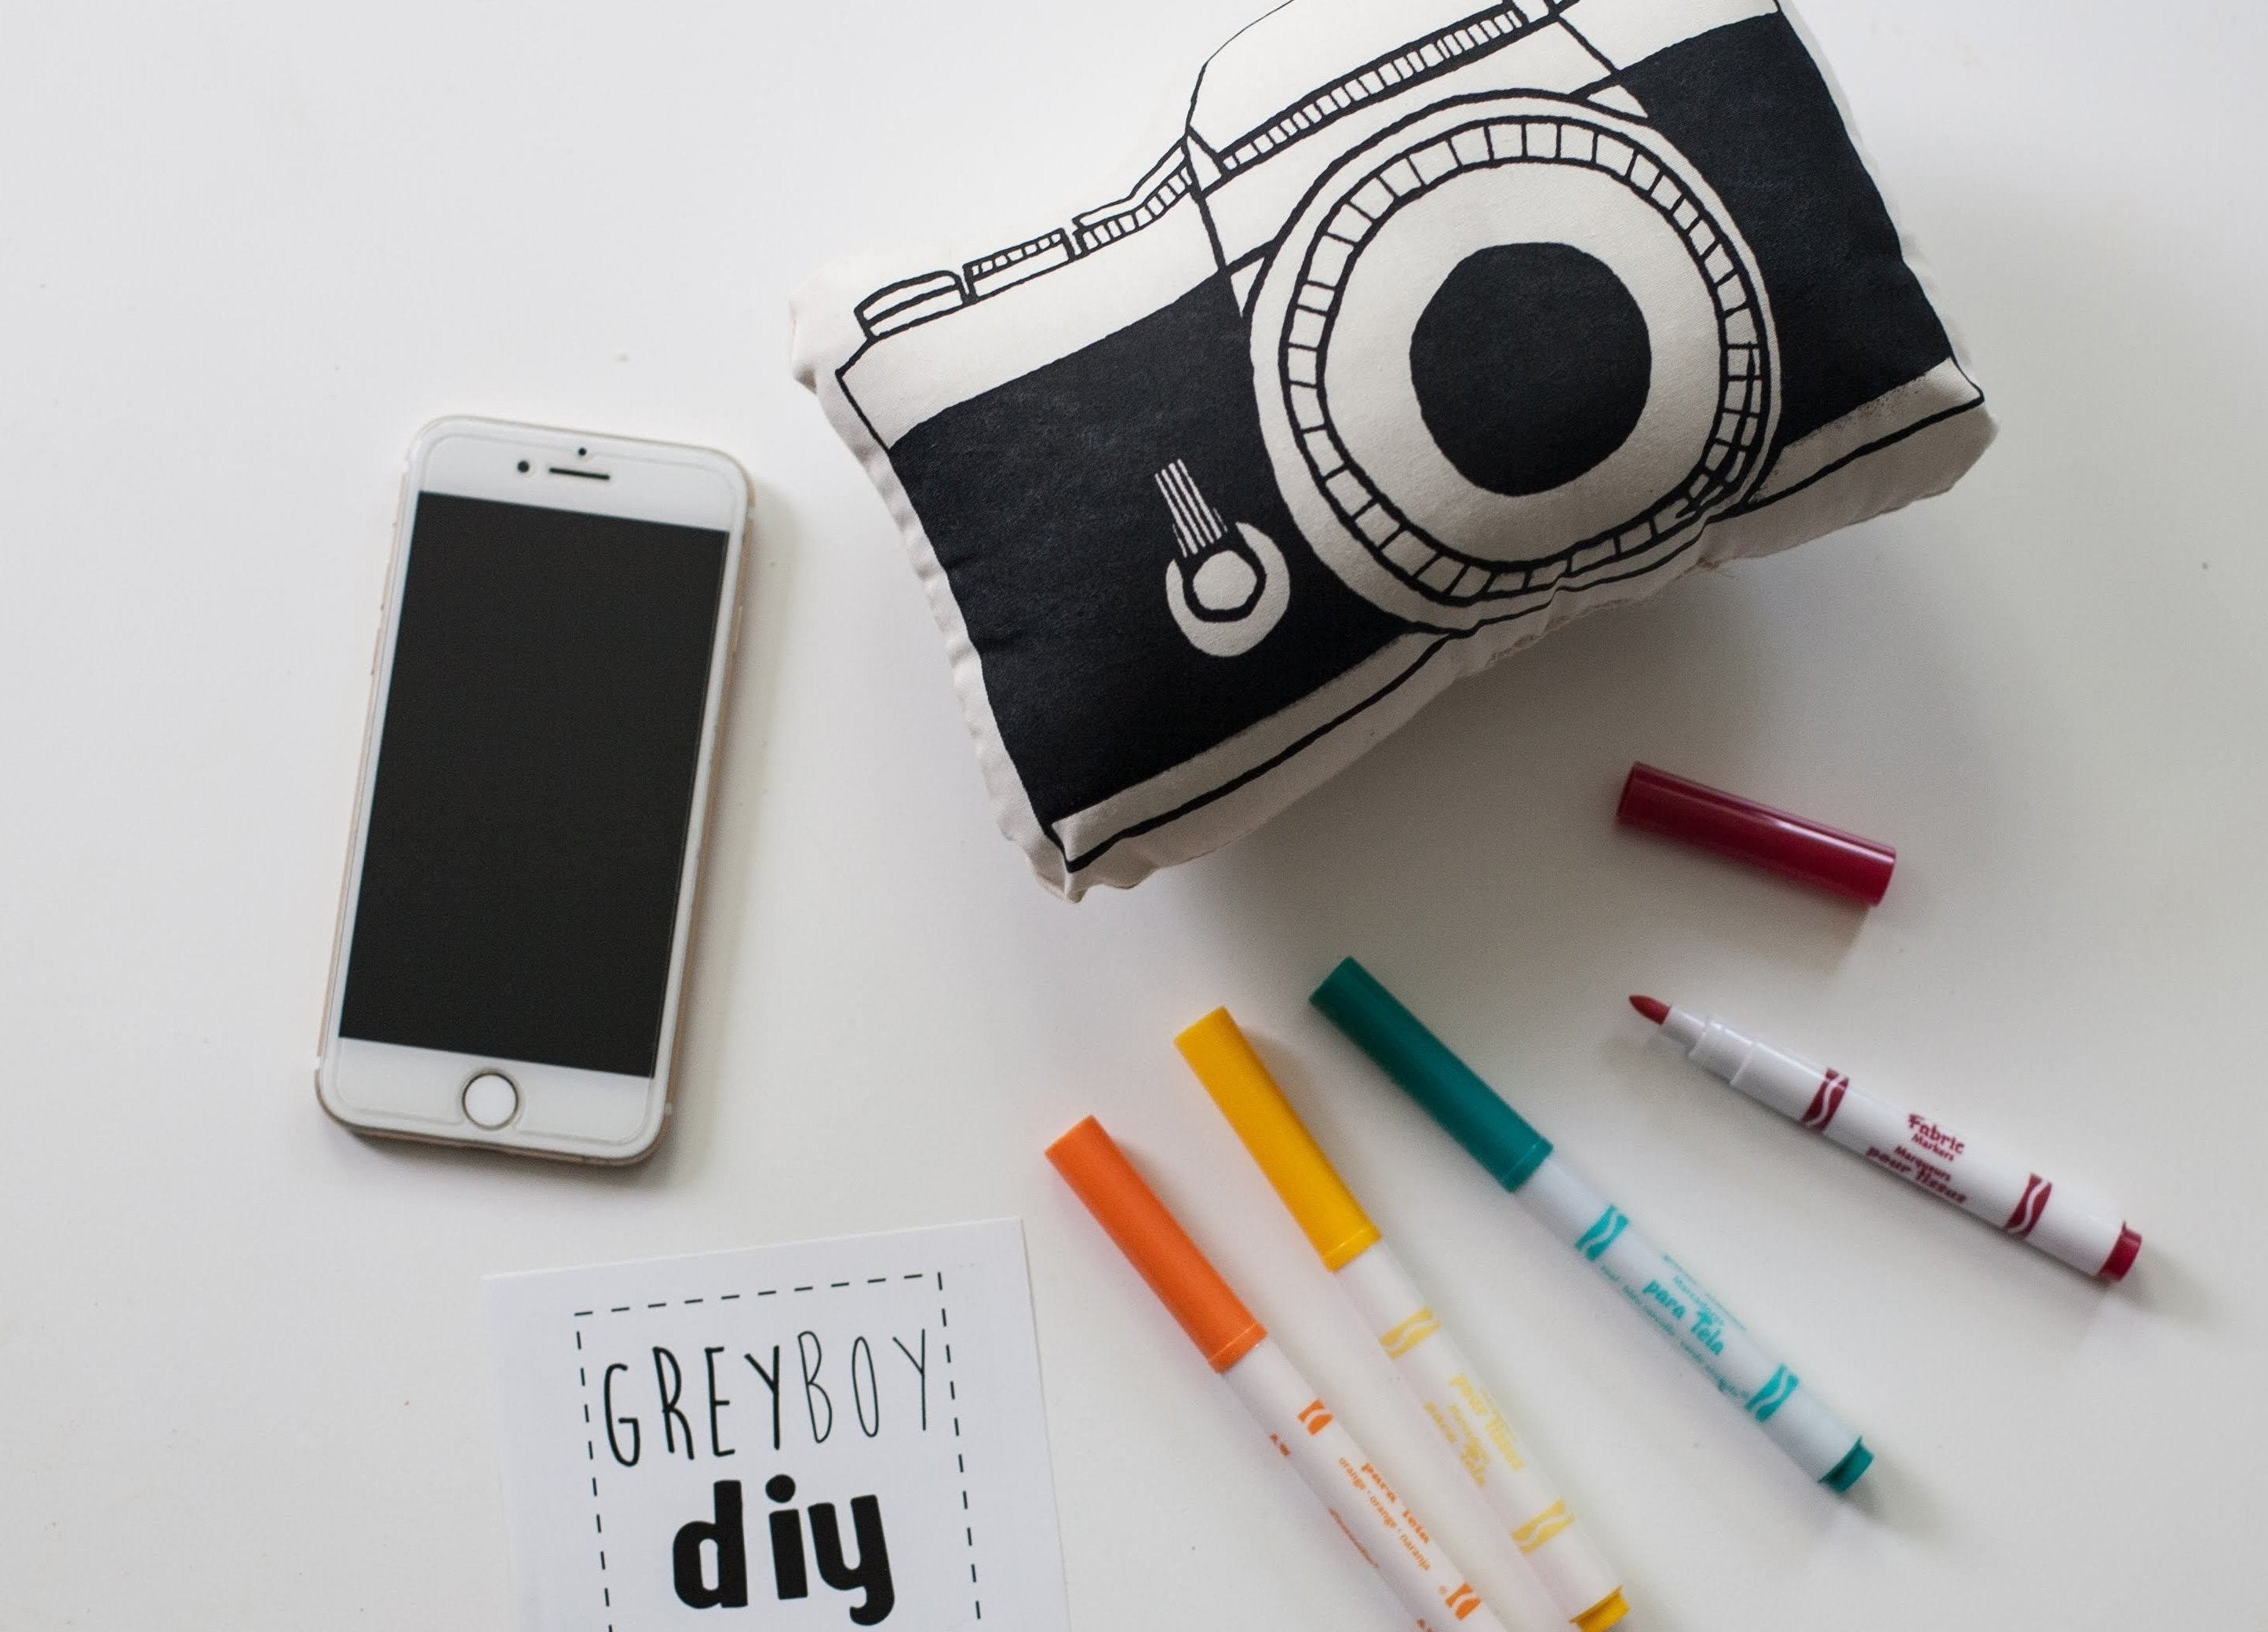 Happy Hour: DIY GreyBoy Camera Workshop | August 31 | 4:00-5:00 PM